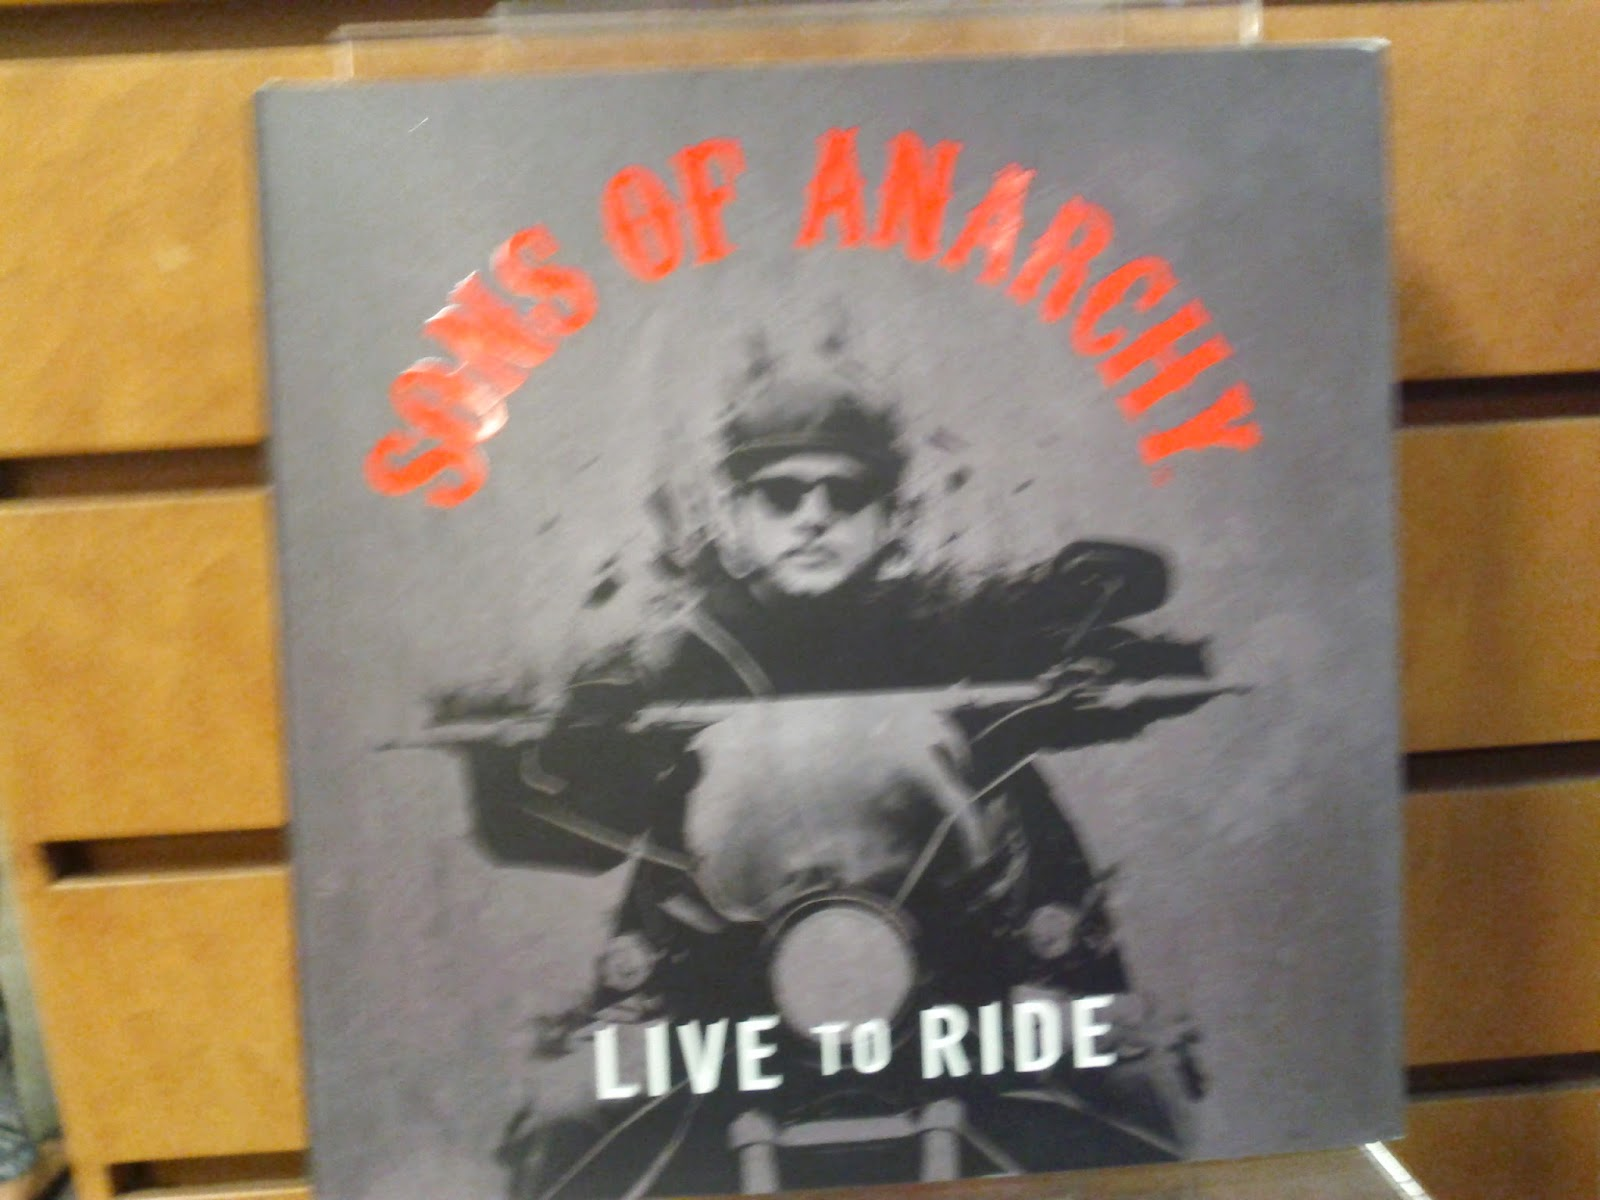 Sons of Anarchy Live to Ride